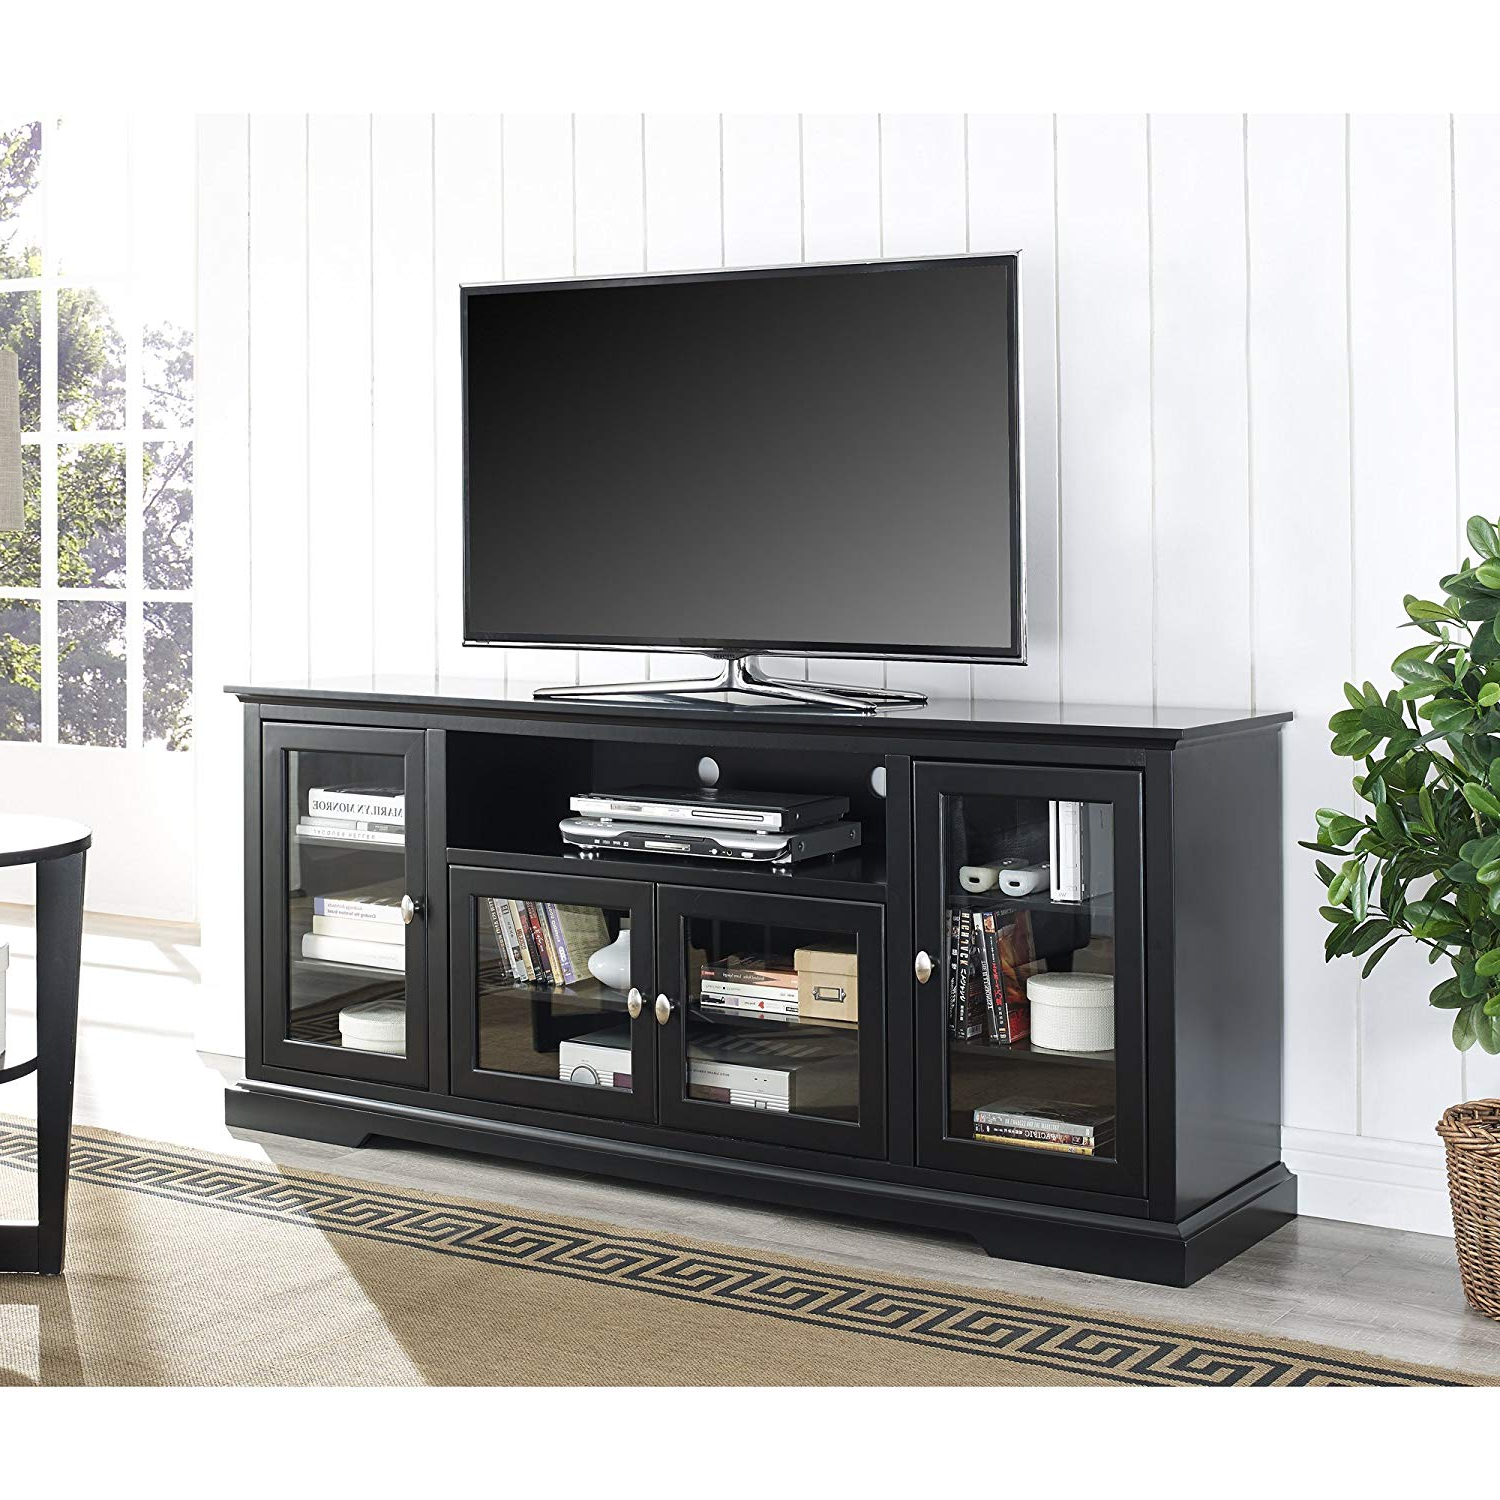 "Dark Wood Tv Stands With Widely Used Amazon: We Furniture 70"" Highboy Style Wood Tv Stand Console (View 11 of 20)"